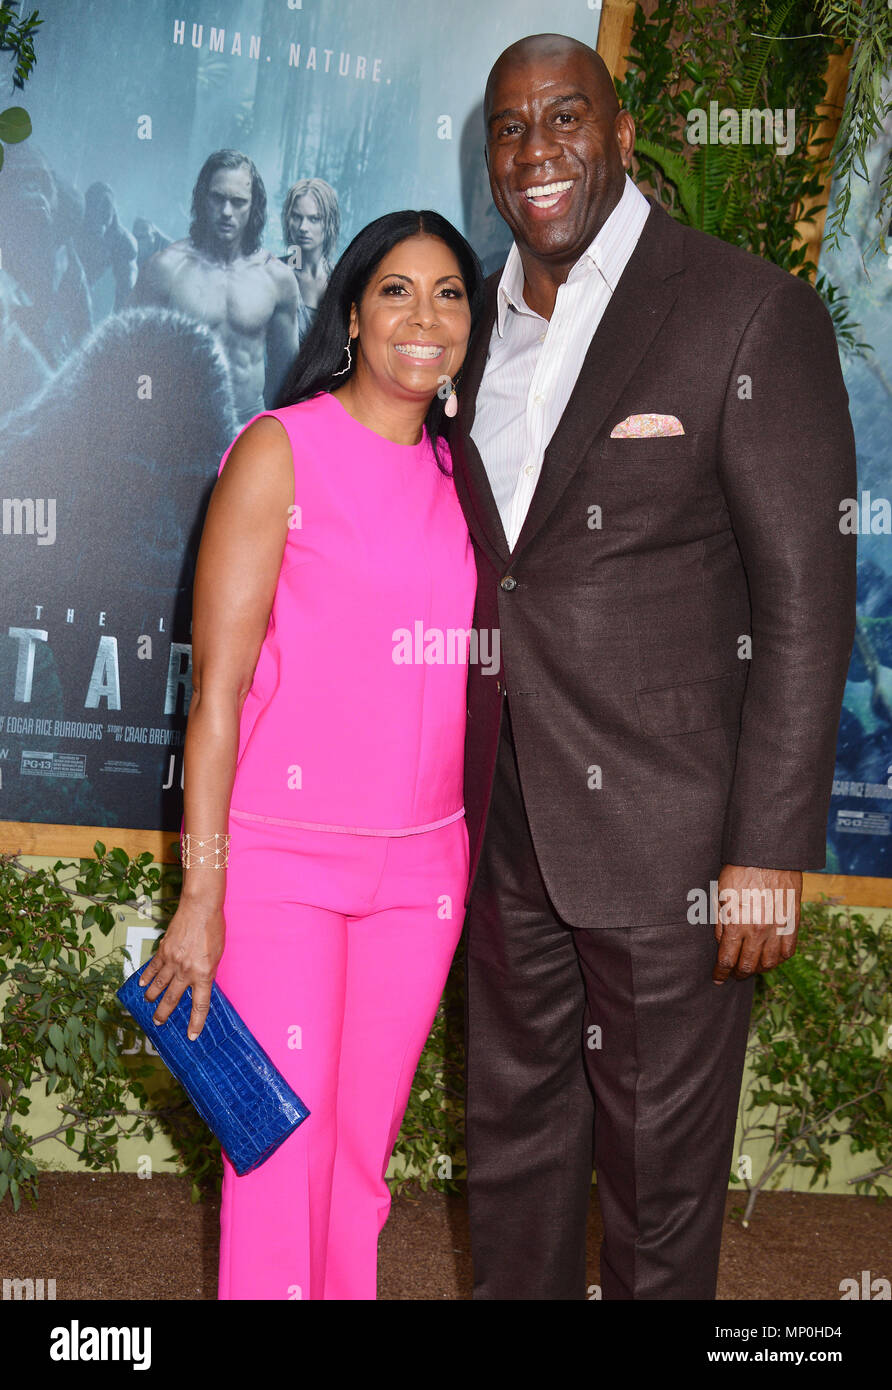 Magic Johnson Wife Cookie 040 At The Legend Of Tarzan Premiere At The Dolby Theatre In Los Angeles June 27 2016 Magic Johnson Wife Cookie 040 Red Carpet Event Vertical Usa Film